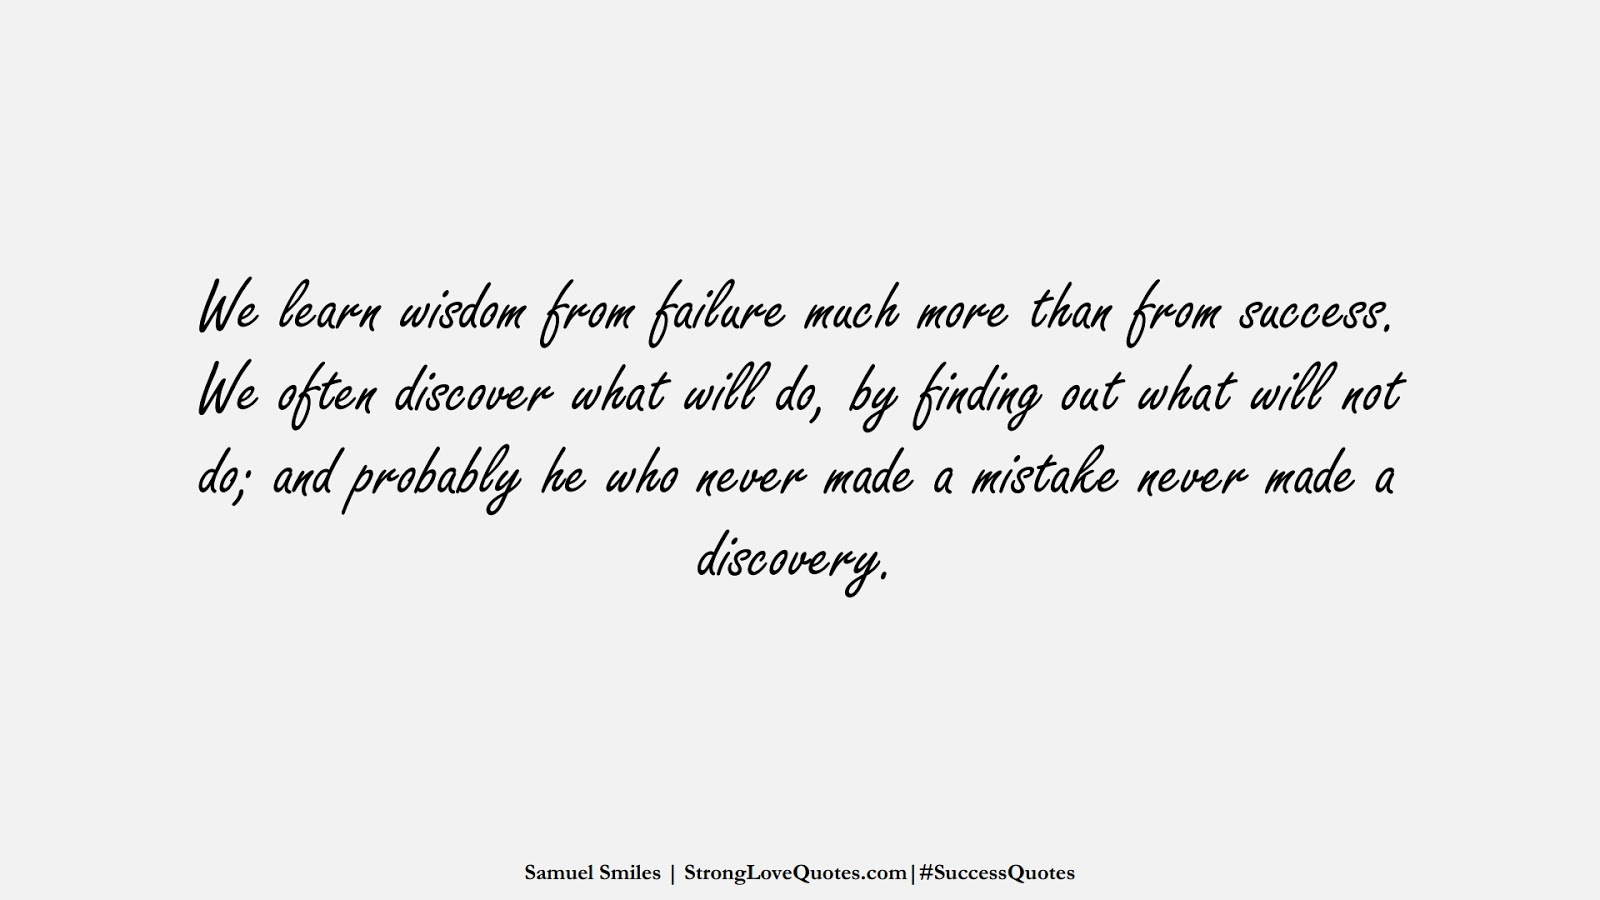 We learn wisdom from failure much more than from success. We often discover what will do, by finding out what will not do; and probably he who never made a mistake never made a discovery. (Samuel Smiles);  #SuccessQuotes